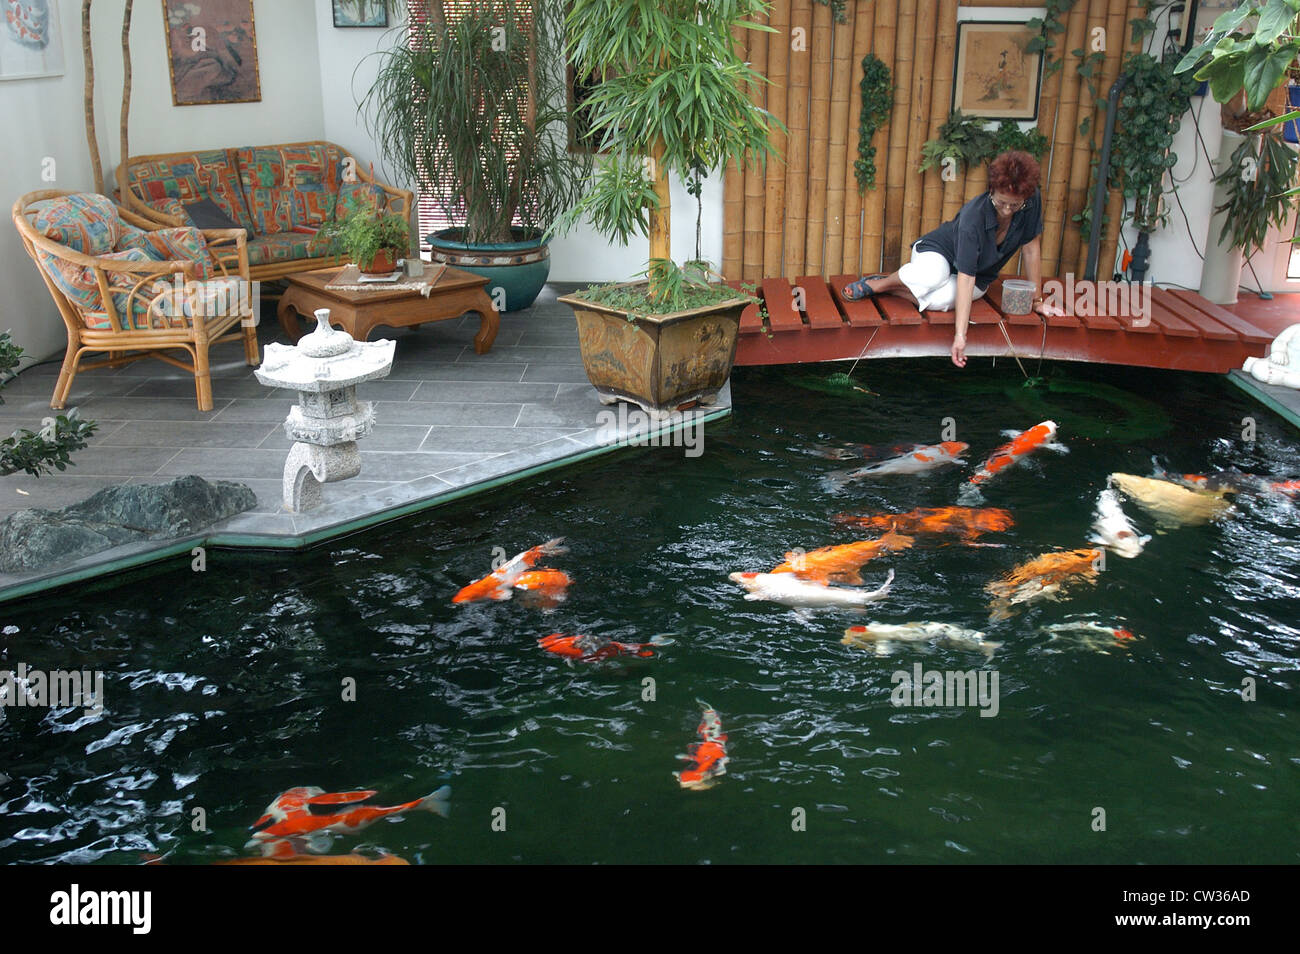 Indoor koi pond in reigoldswil switzerland stock photo for Indoor koi fish pond